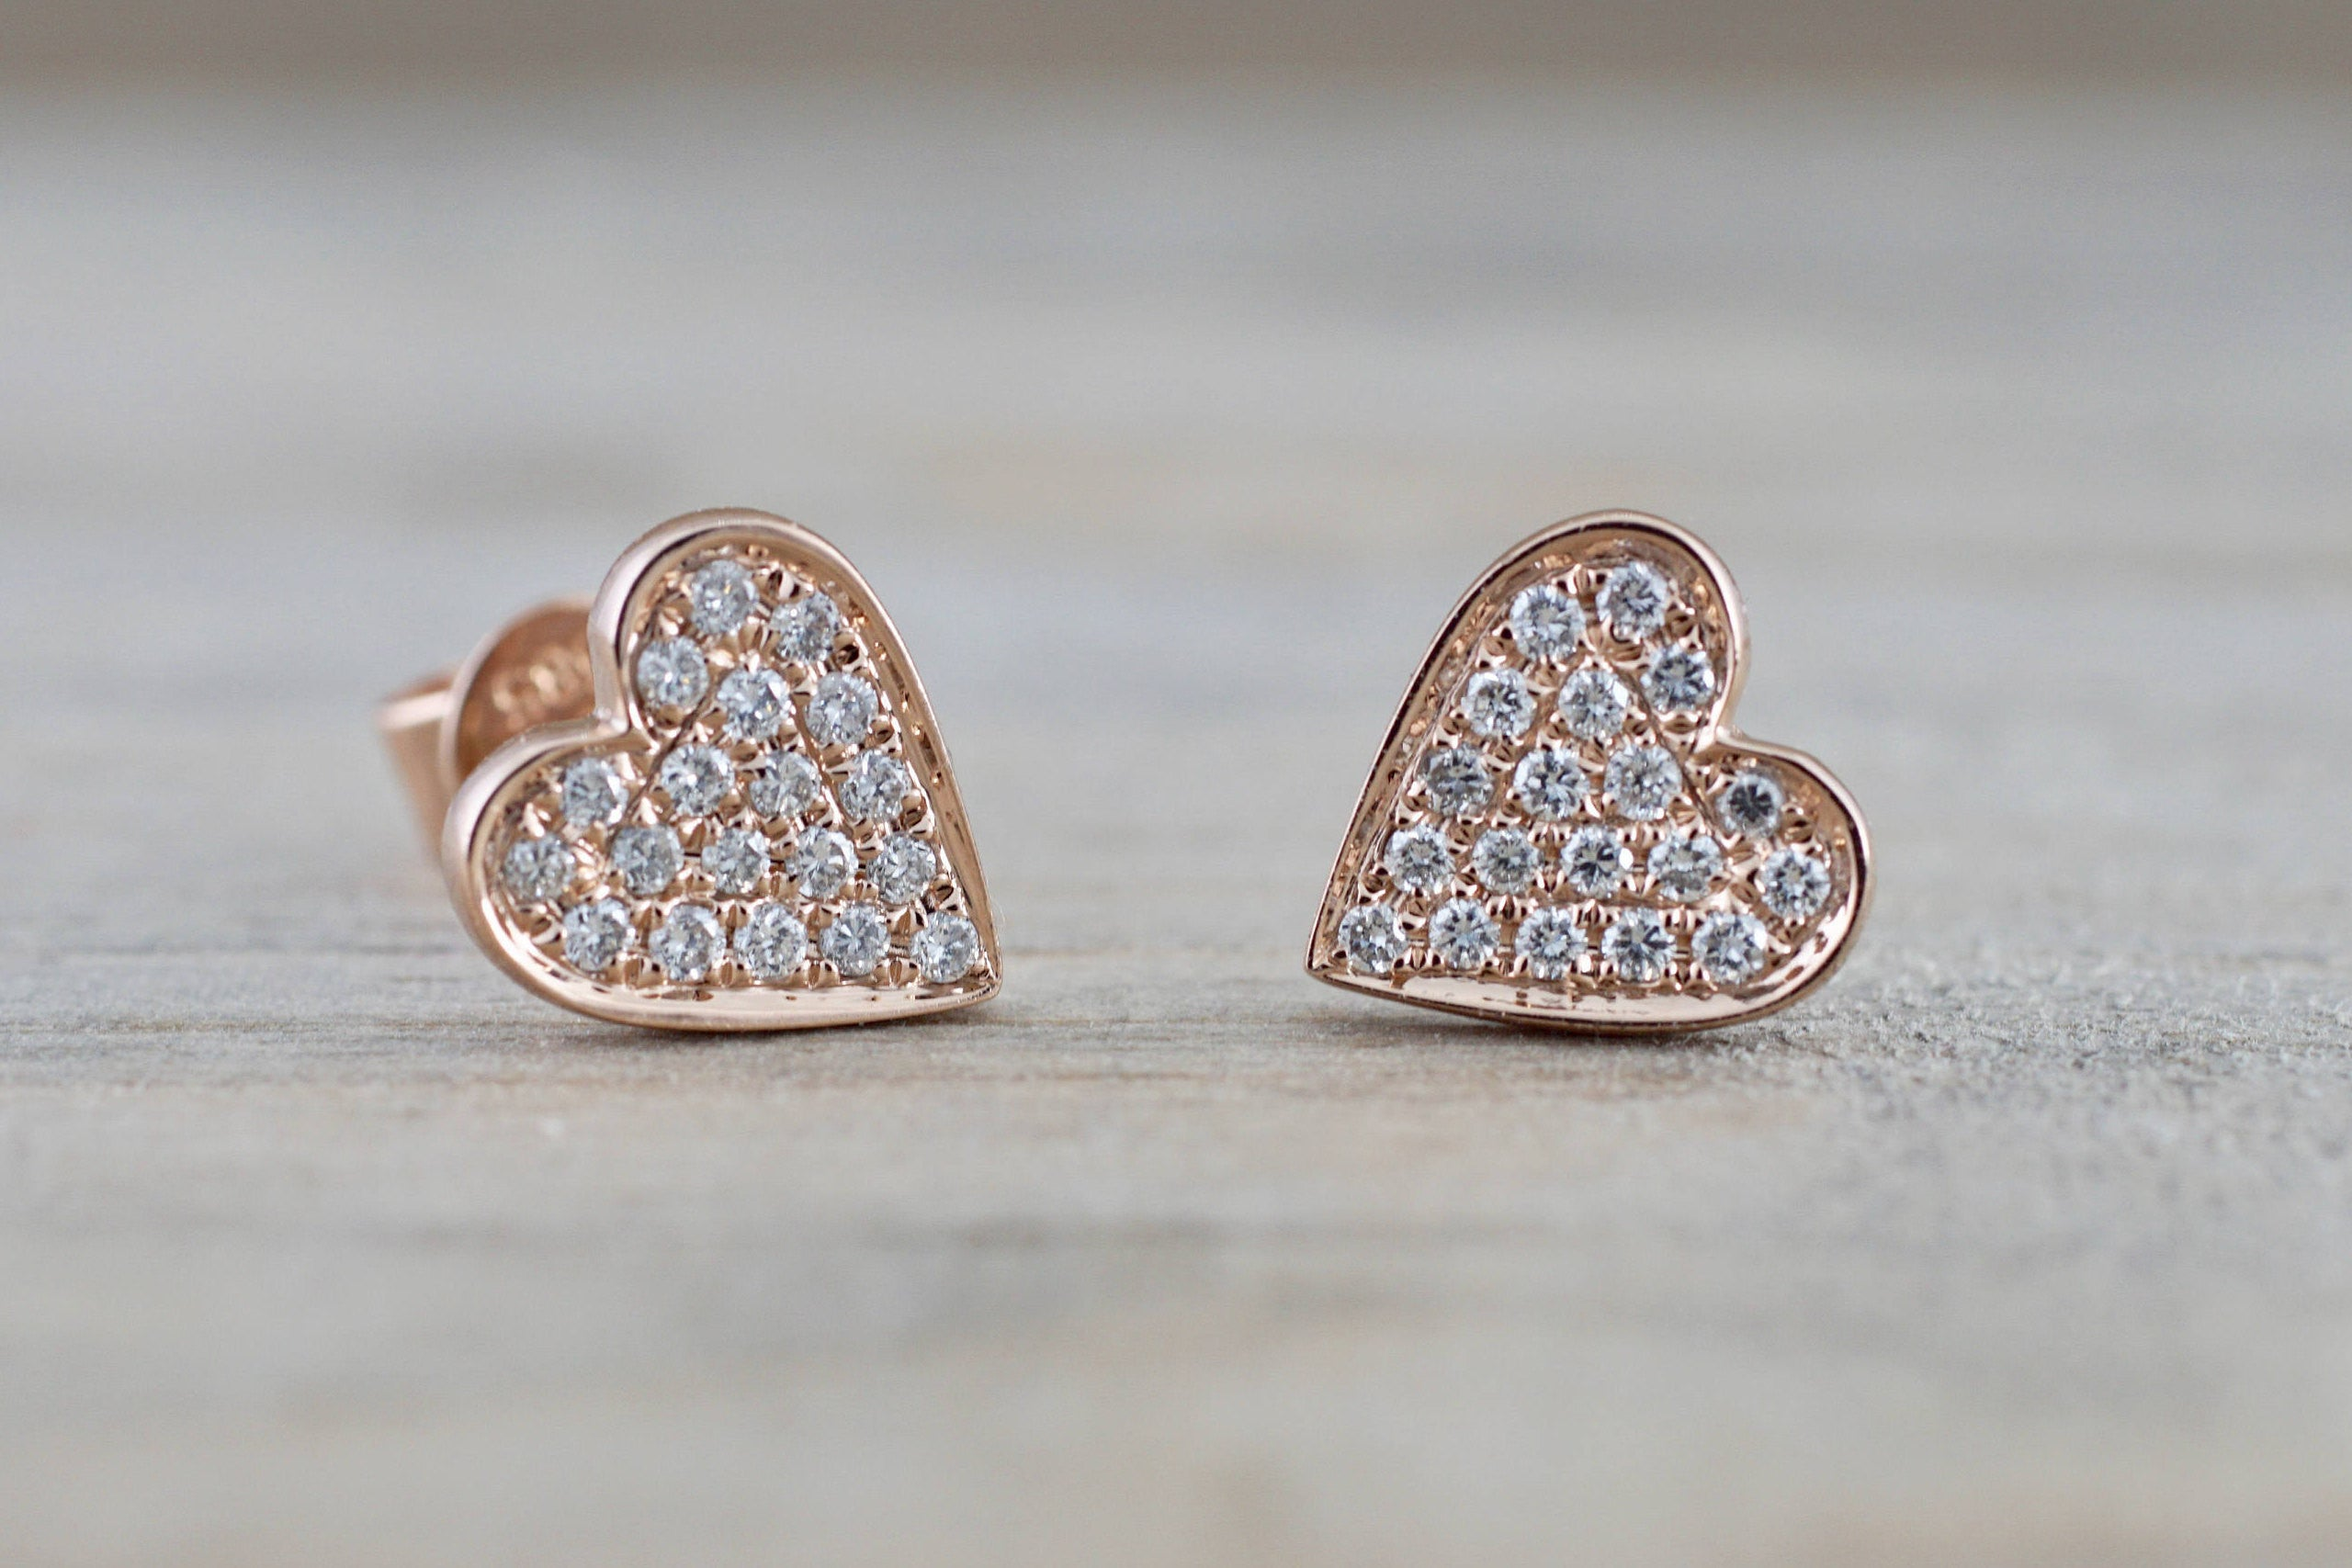 design gold il fullxfull studs earrings flat products stud pave micro post heart diamond rose round disk